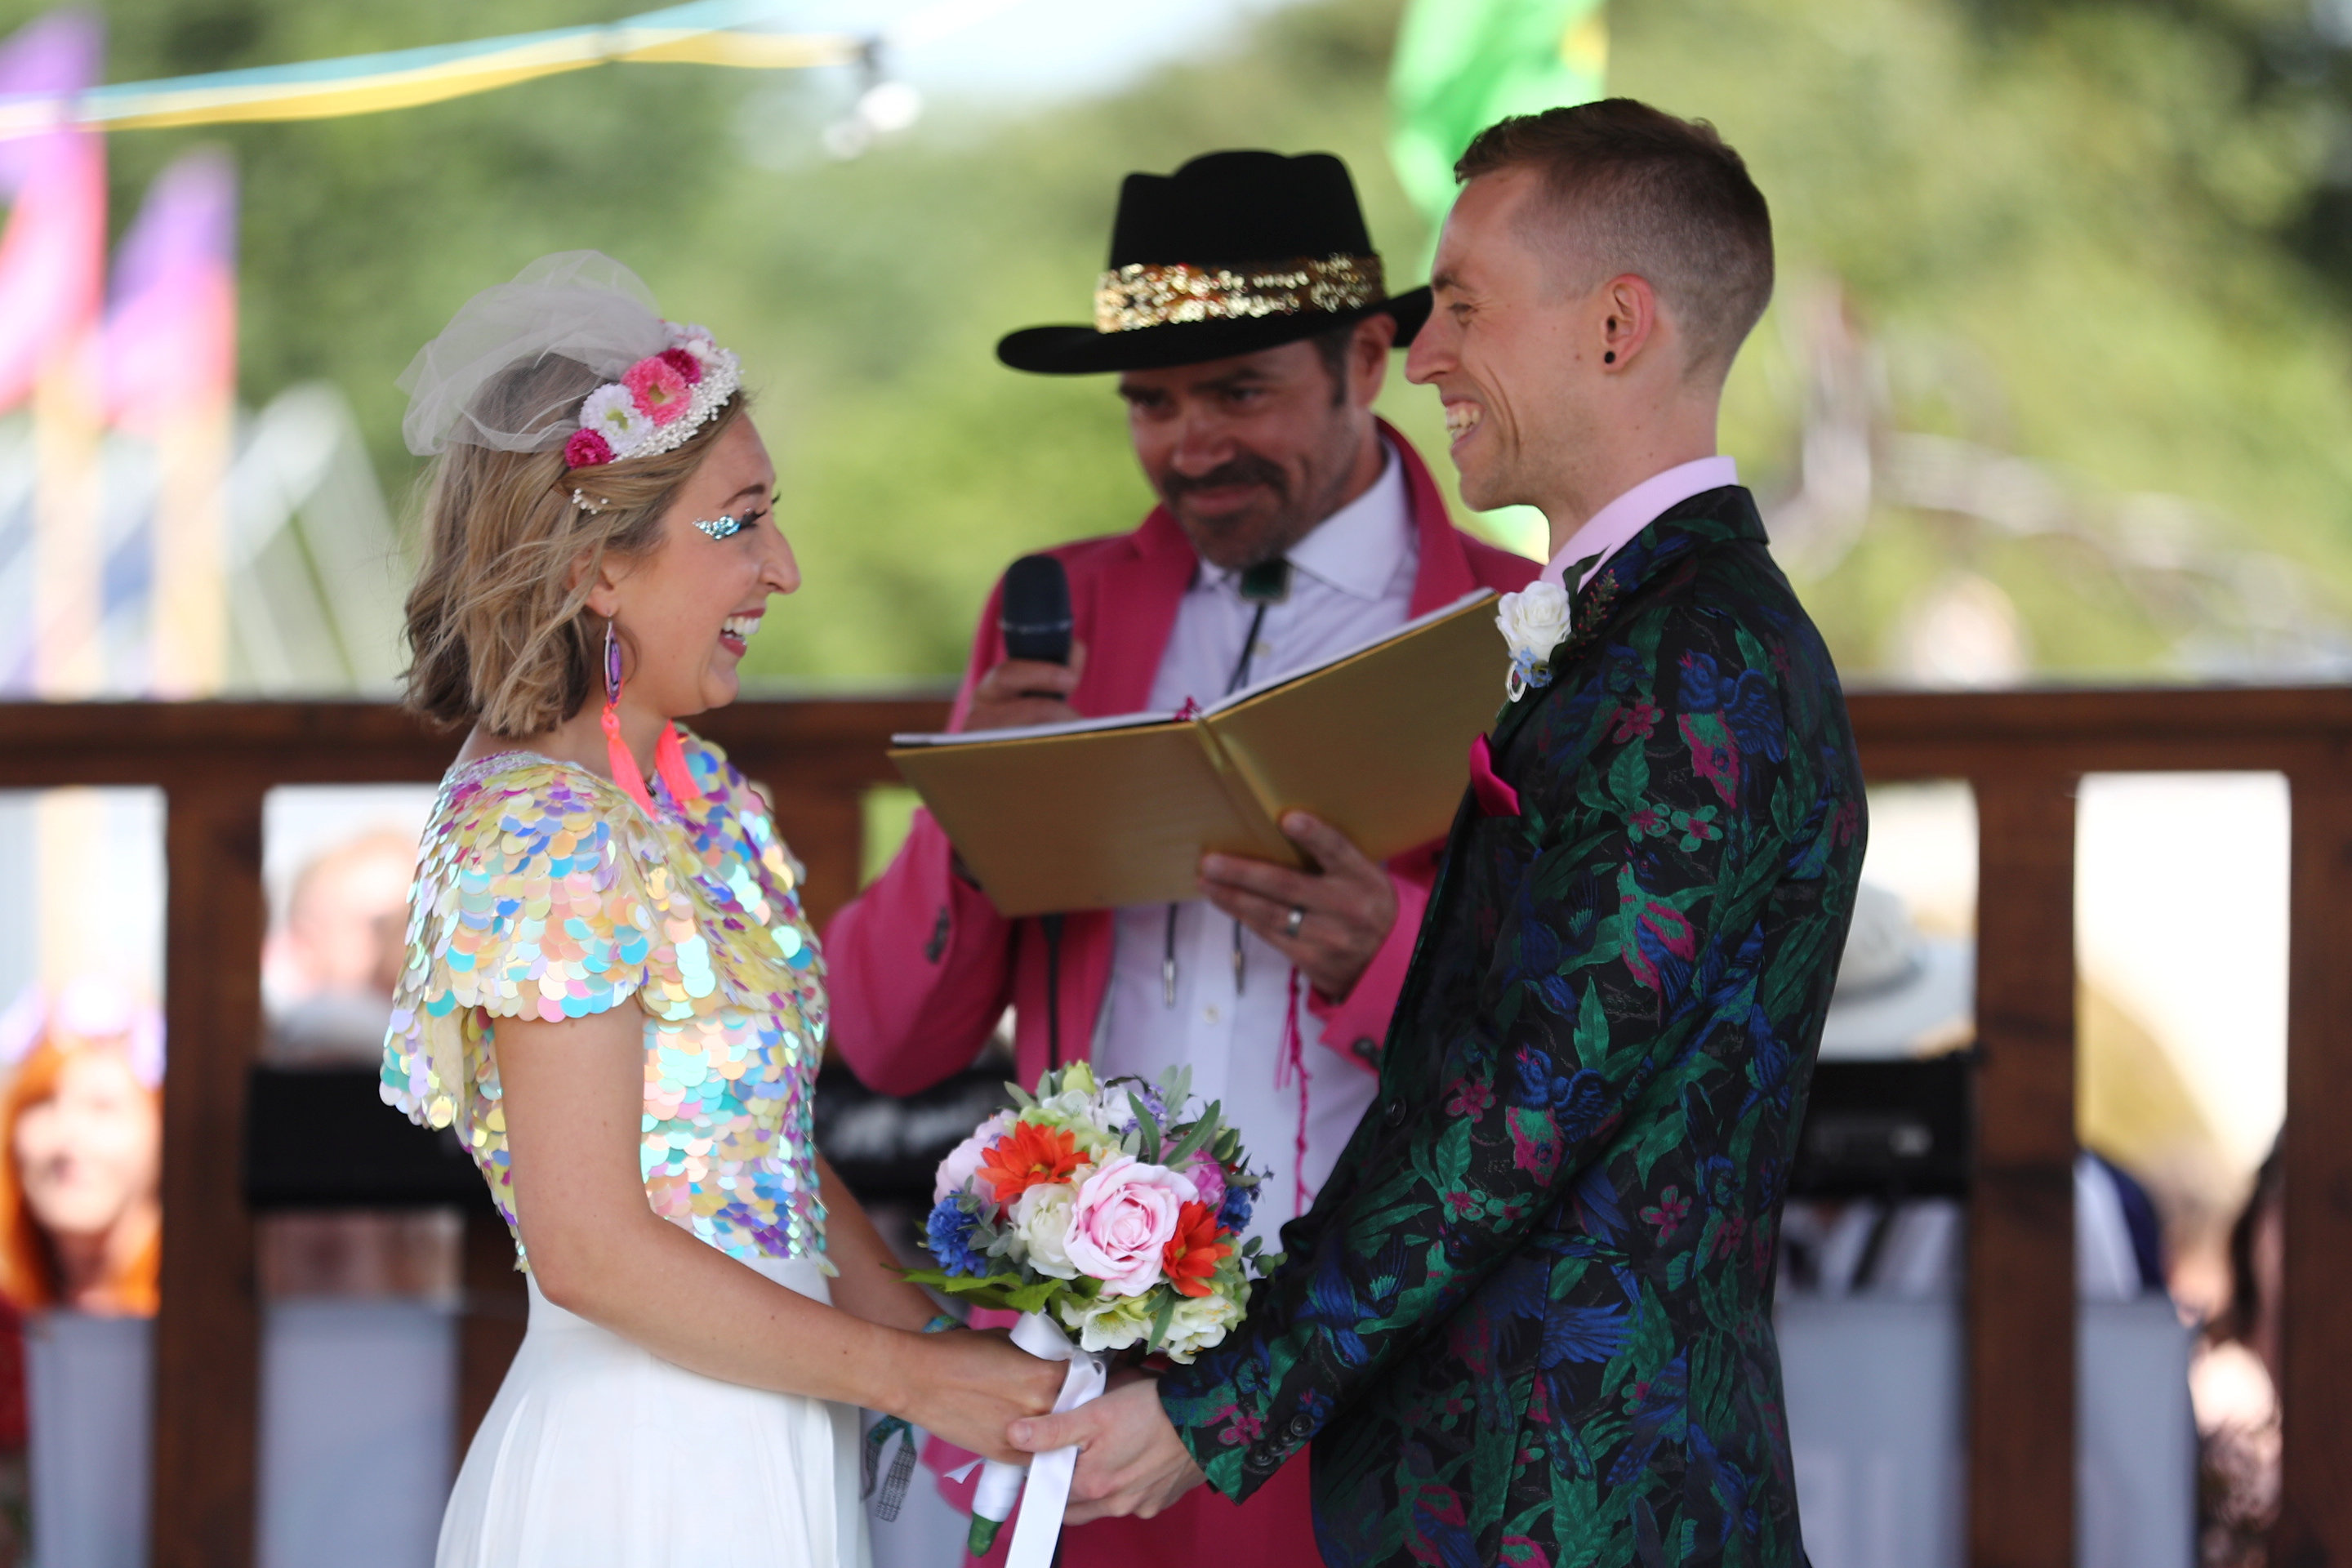 The happy couple on their wedding day at Glastonbury Festival. Credit: SWNS